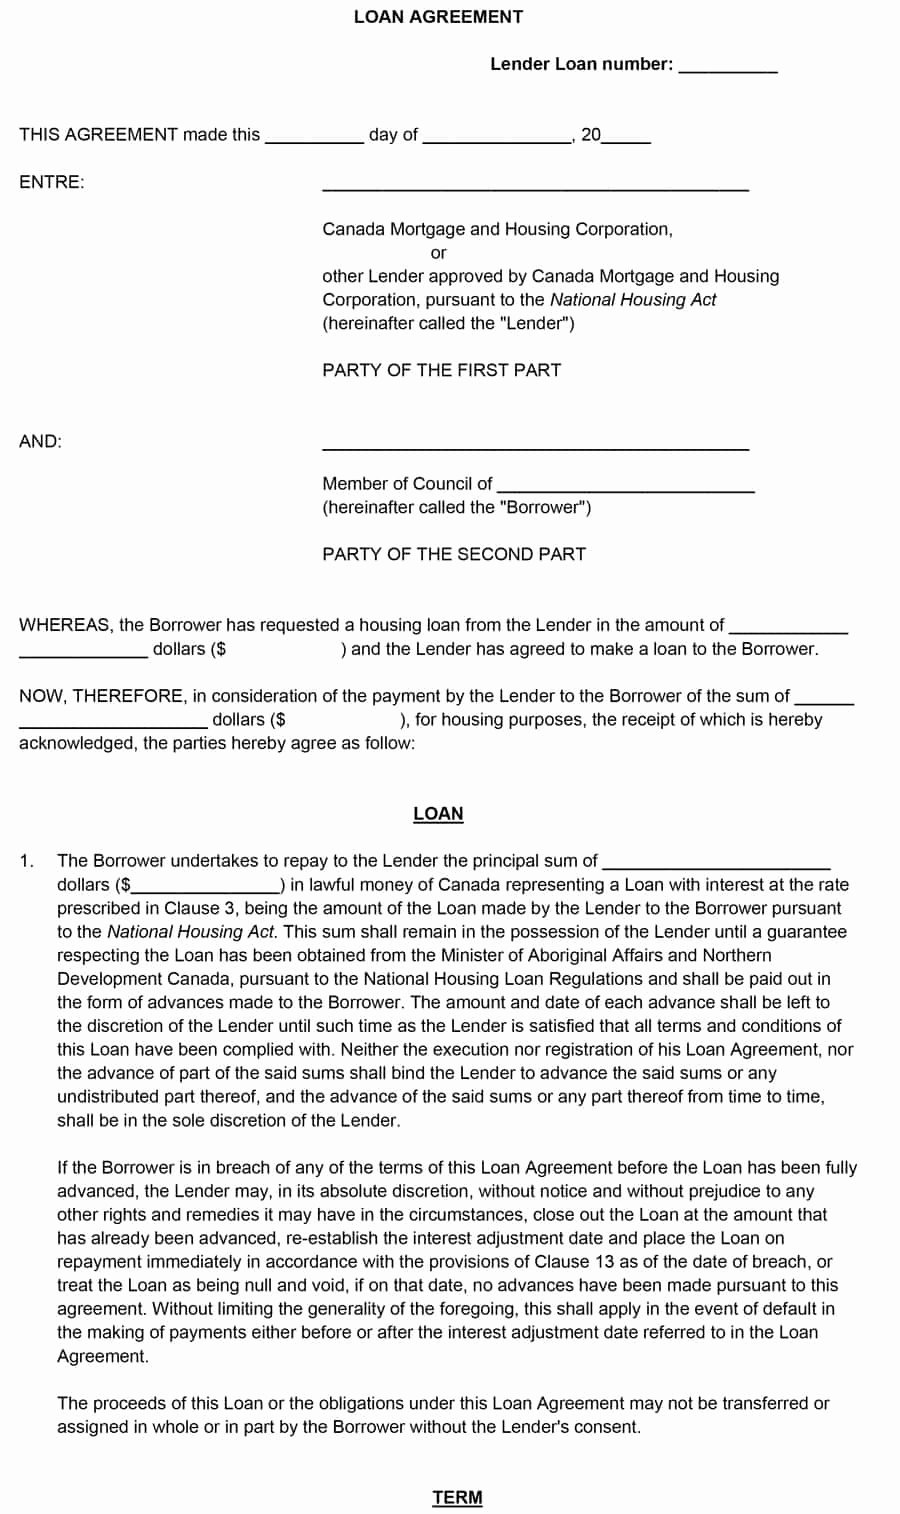 Loan Contract Template Free Beautiful 40 Free Loan Agreement Templates [word & Pdf] Template Lab